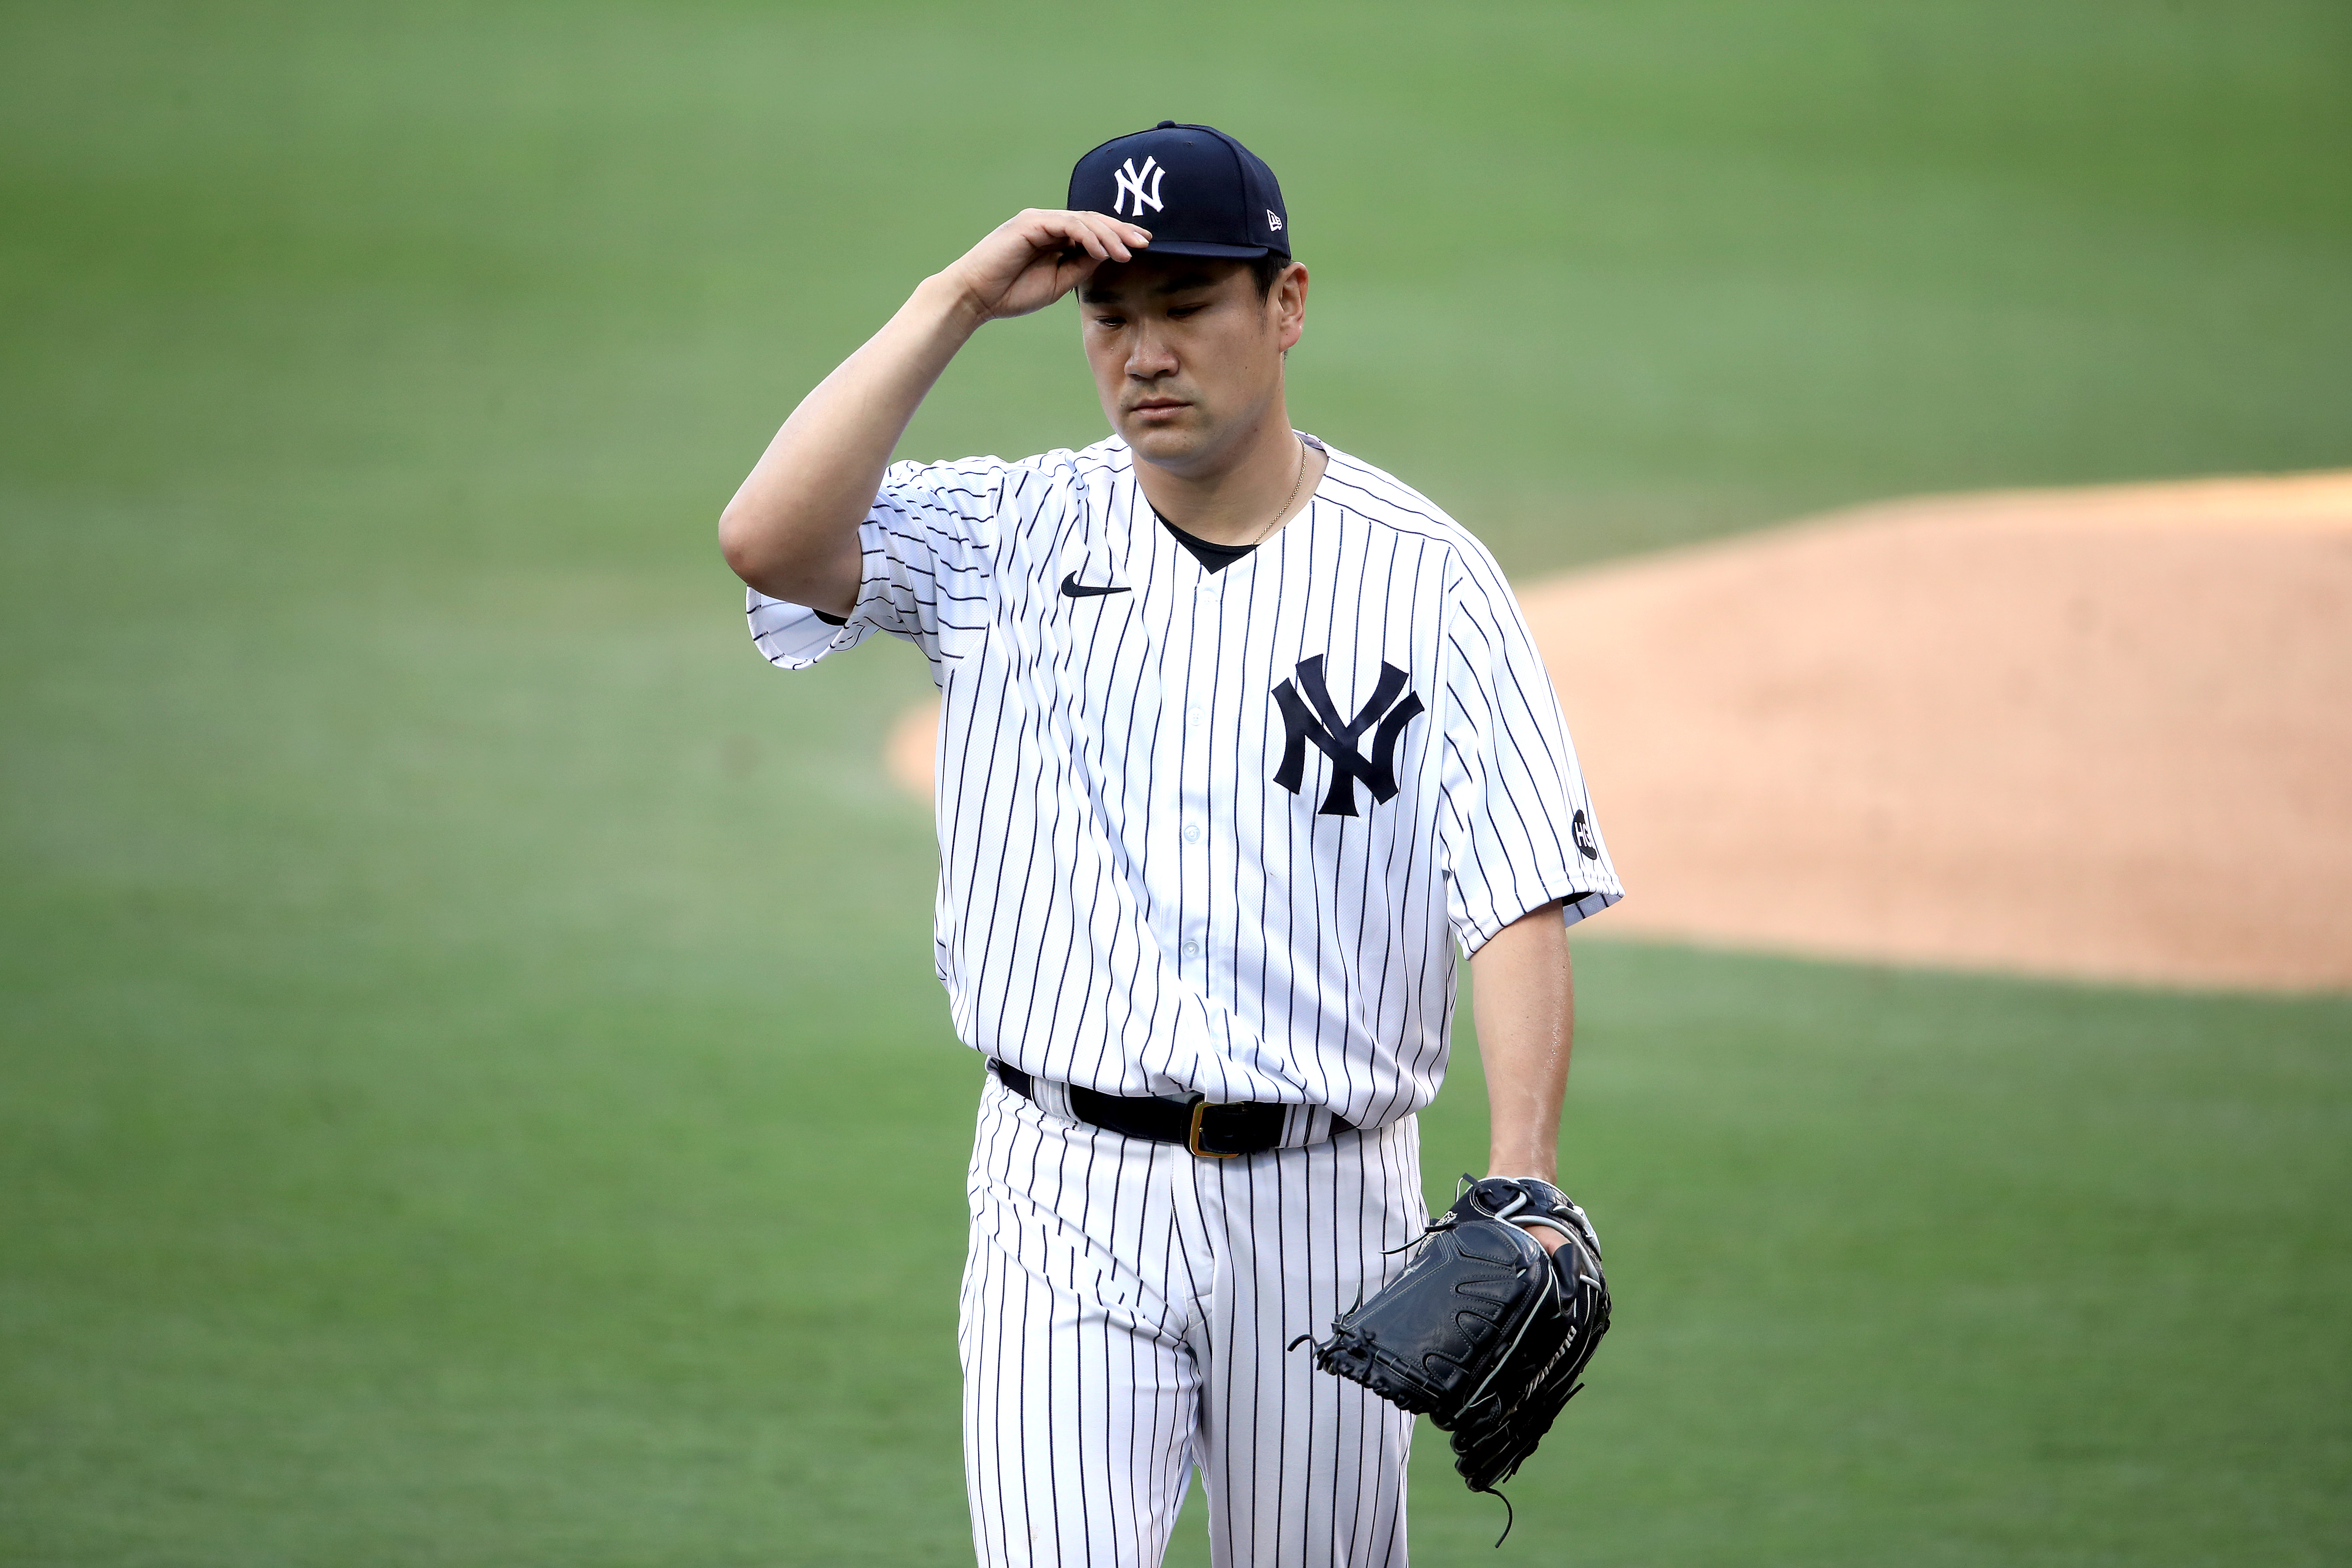 Masahiro Tanaka #19 of the New York Yankees heads back to the dugout against the Tampa Bay Rays during the second inning in Game Three of the American League Division Series at PETCO Park on October 07, 2020 in San Diego, California.